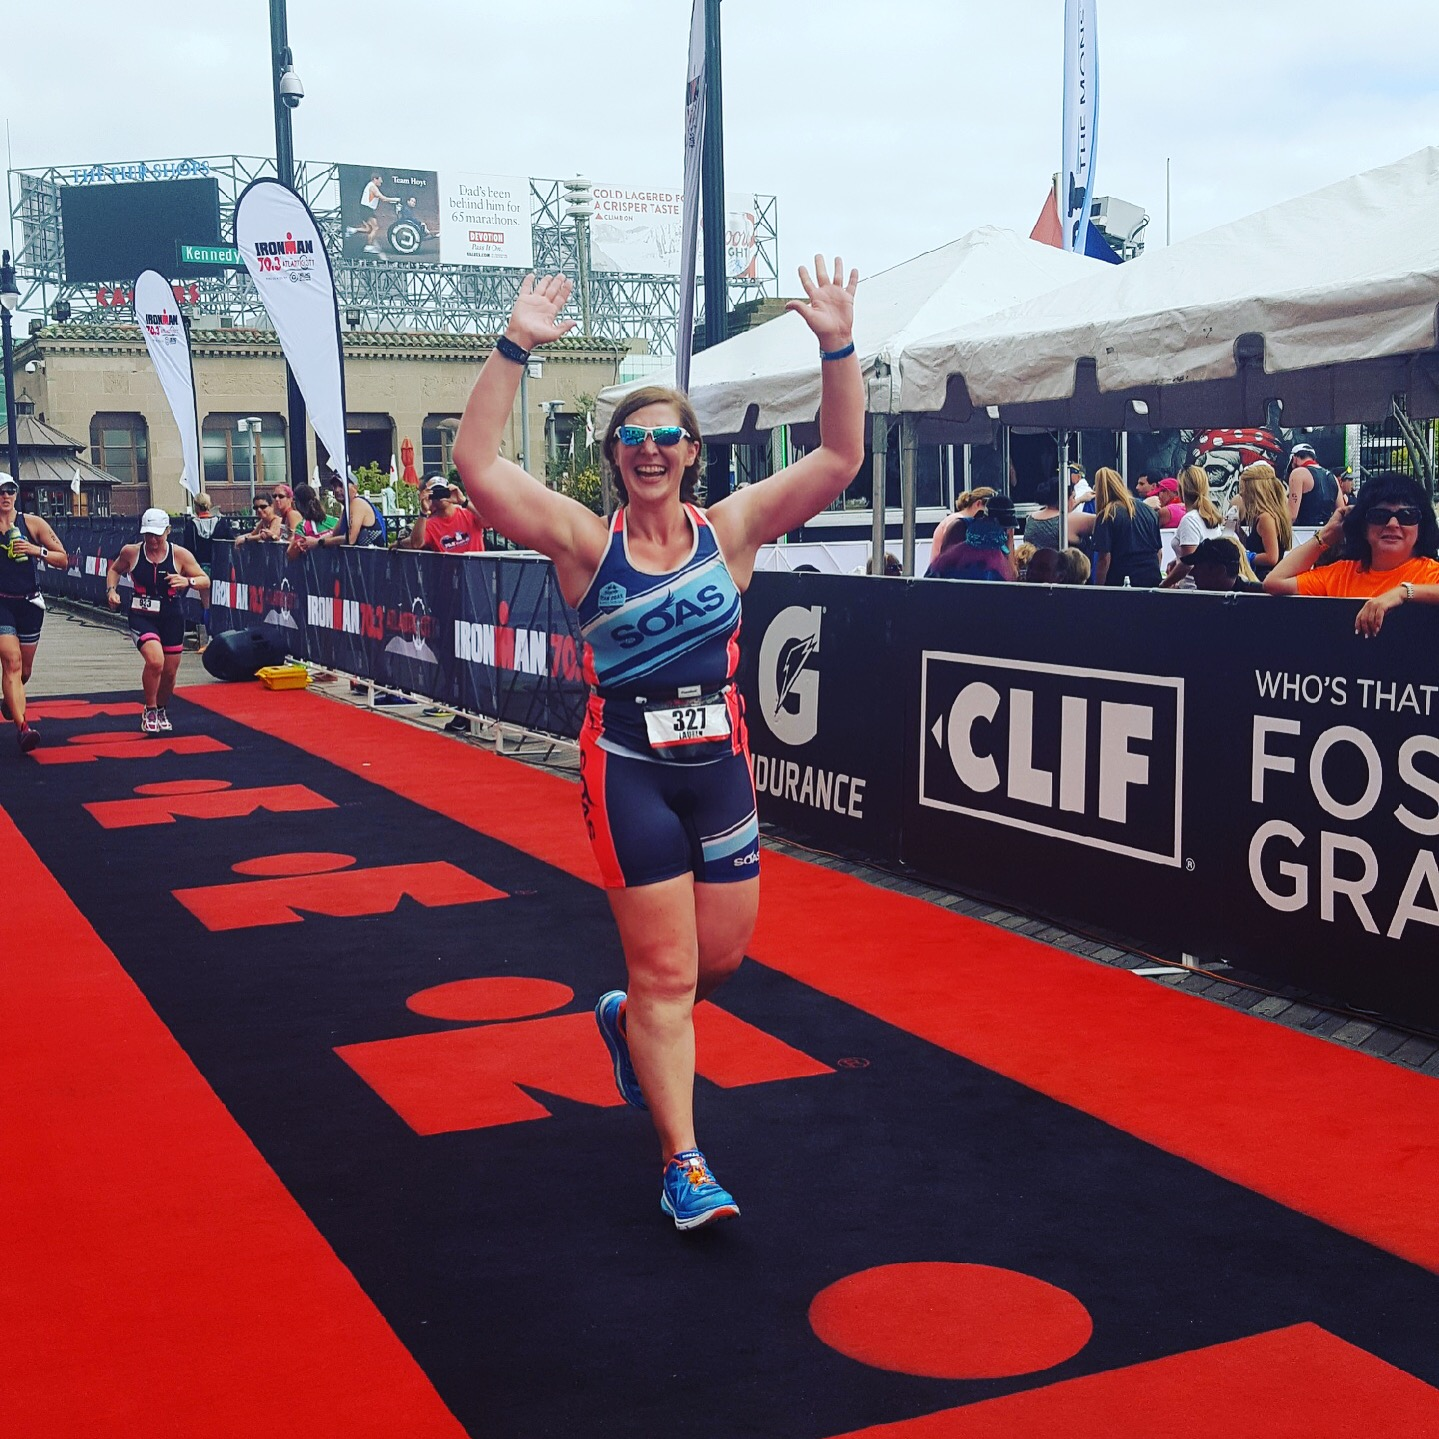 TriathLauren - Ironman 70.3 Atlantic City Finish Line